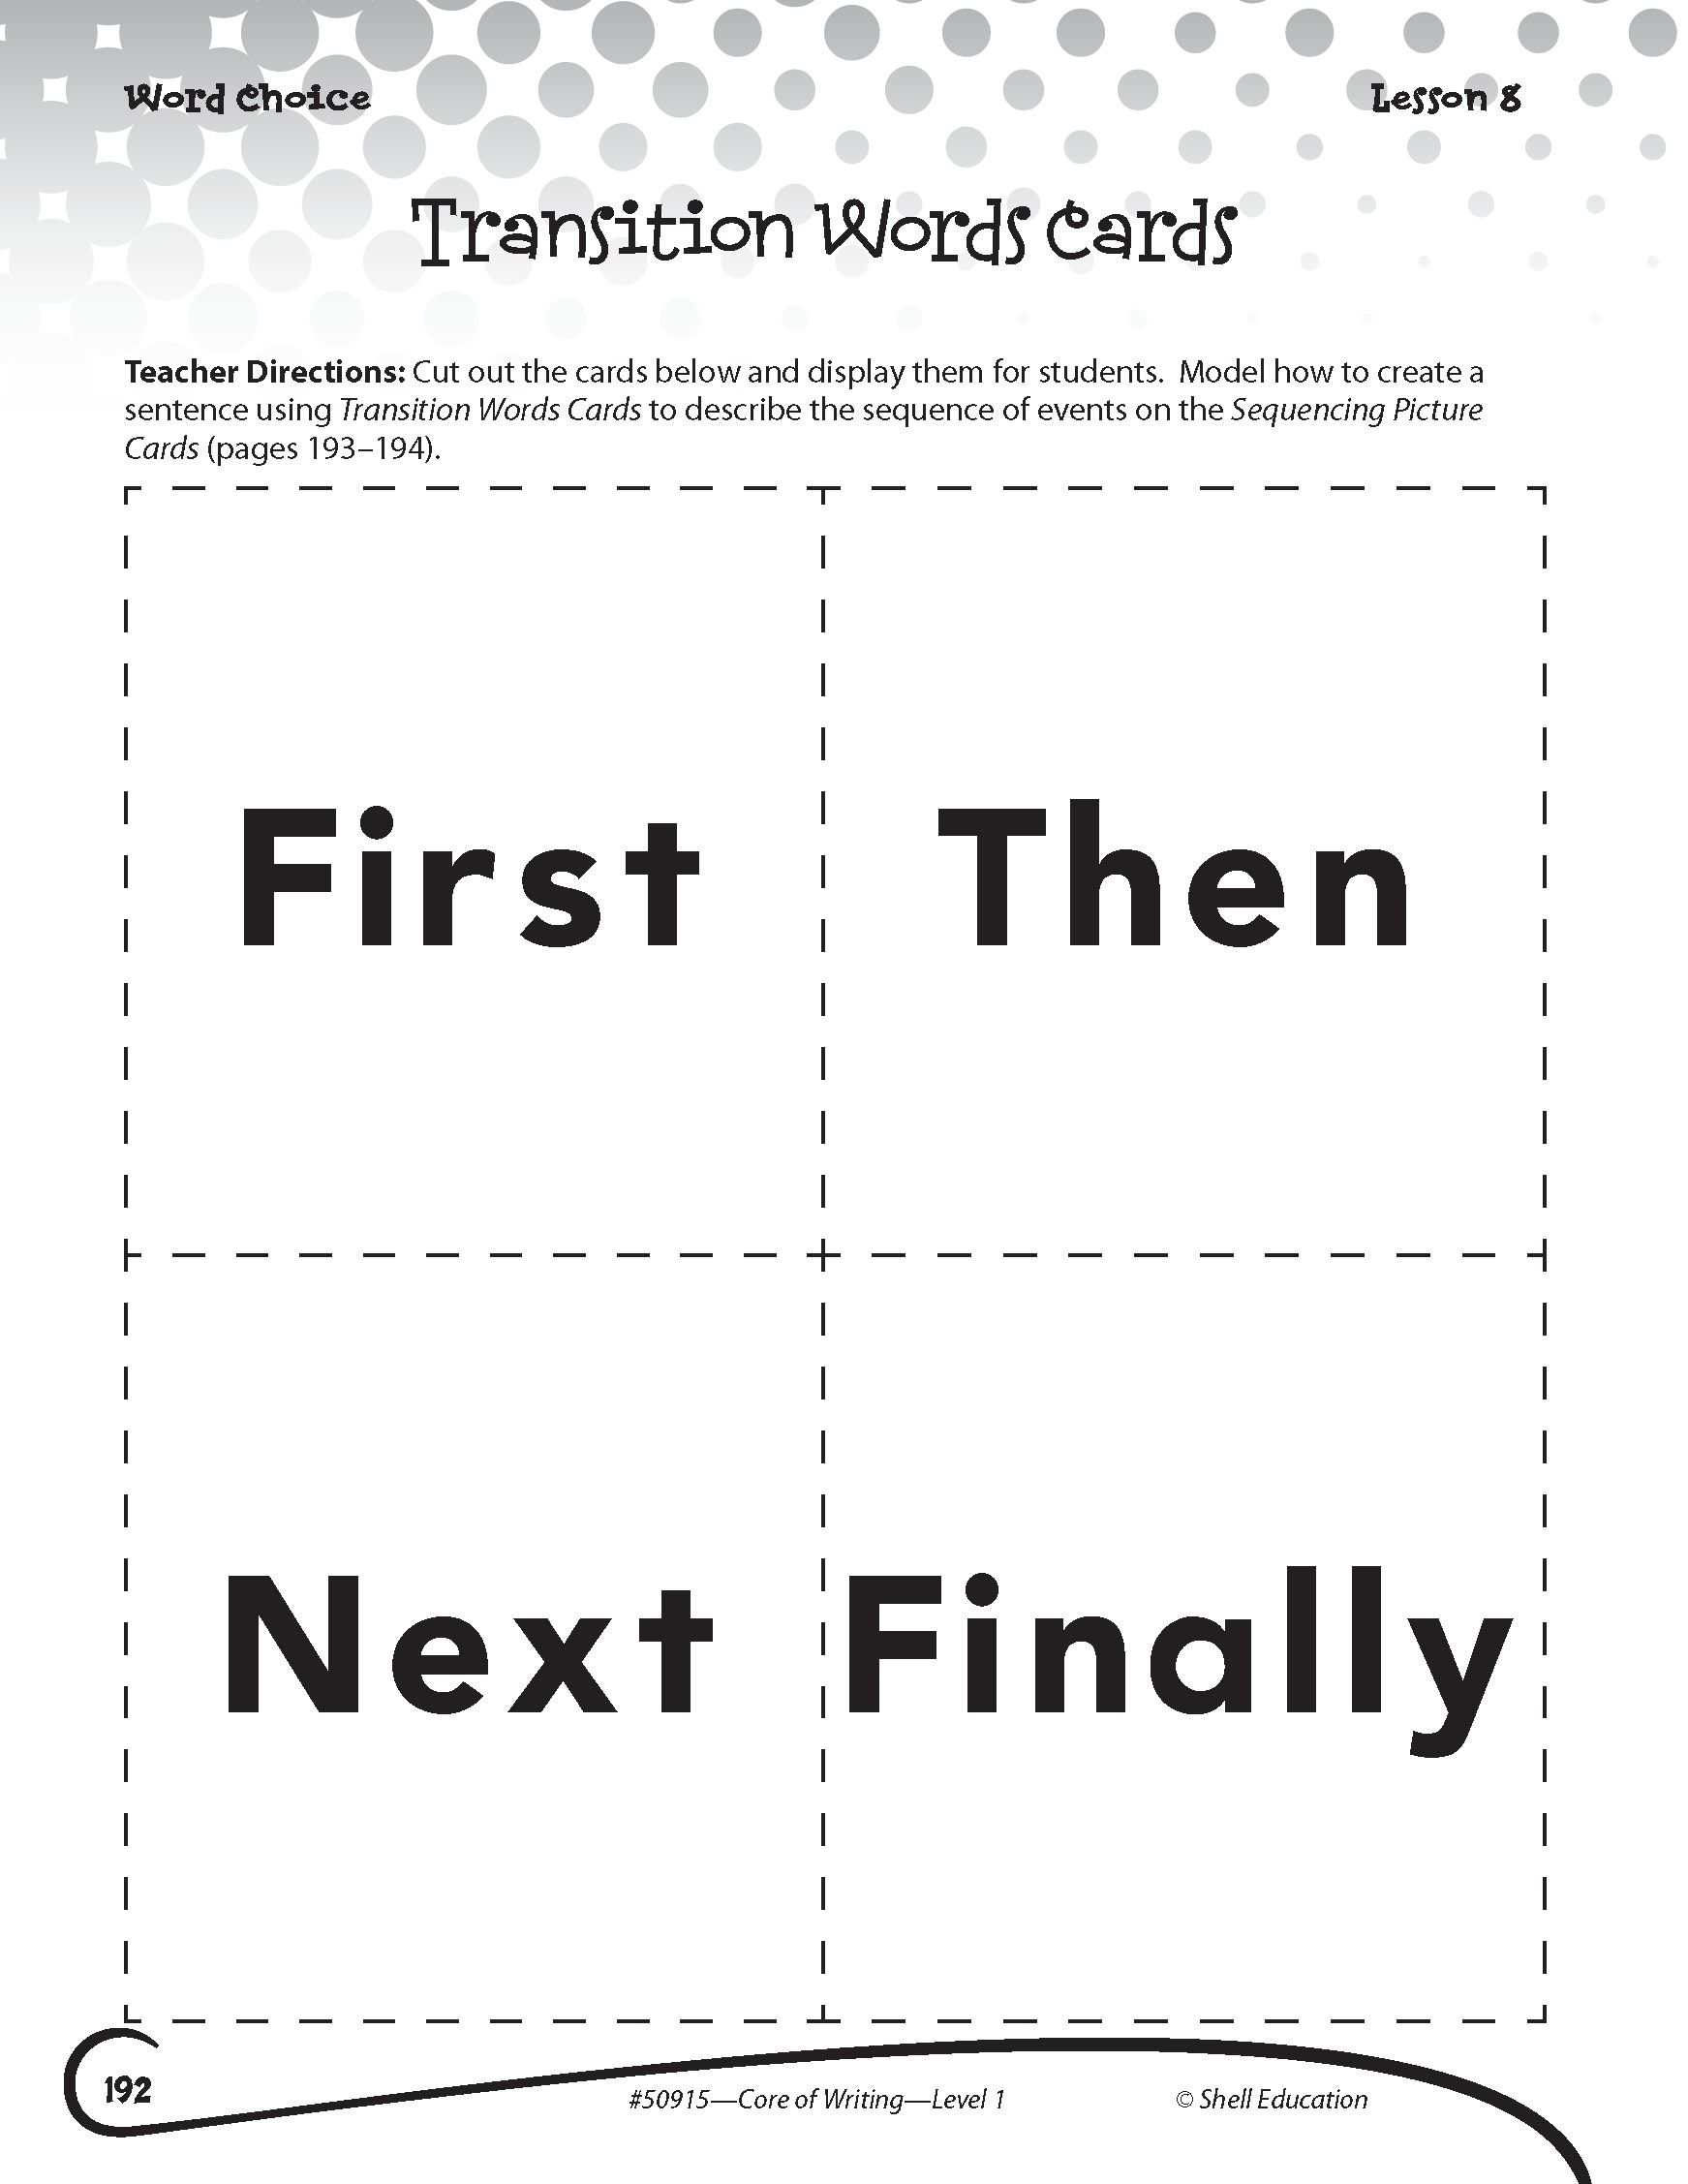 Transition words cards from getting to the core of writing first transition words cards from getting to the core of writing first grade learn more at shelleducation shelleducation writing pinterest learning ibookread ePUb